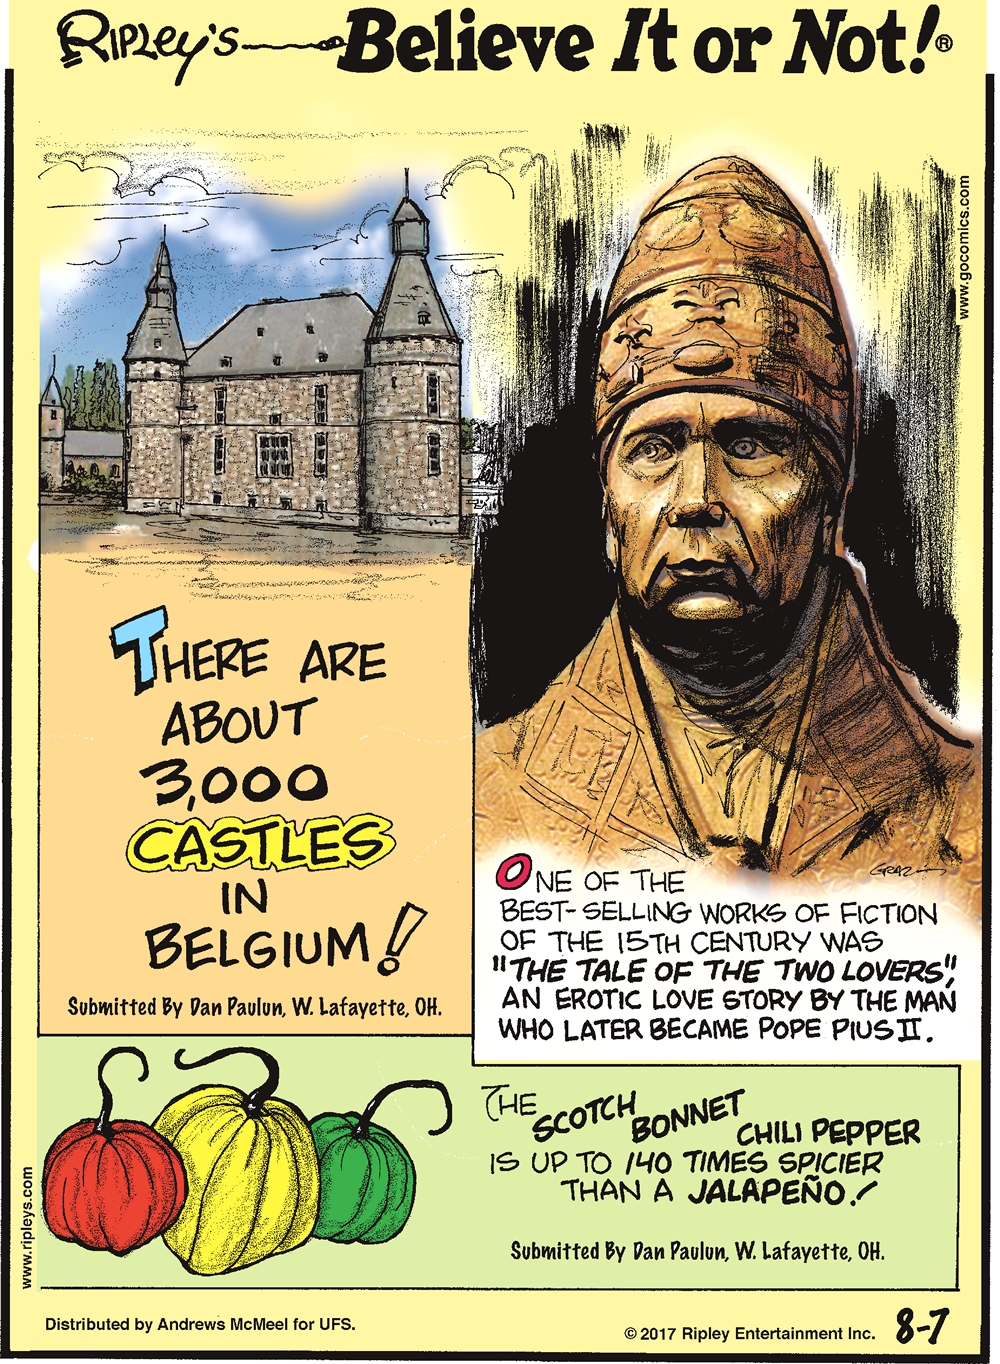 """There are about 3,000 castles in Belgium! Submitted by Dan Paulun, W. Lafayette, OH.-------------------- One of the best-selling works of fiction of the 15th century was """"The Tale of the Two Lovers,"""" an erotic love story by the man who later became Pope Pius II.-------------------- The scotch bonnet chili pepper is up to 140 times spicier than a jalapeno! Submitted by Dan Paulun, W. Lafayette, OH."""